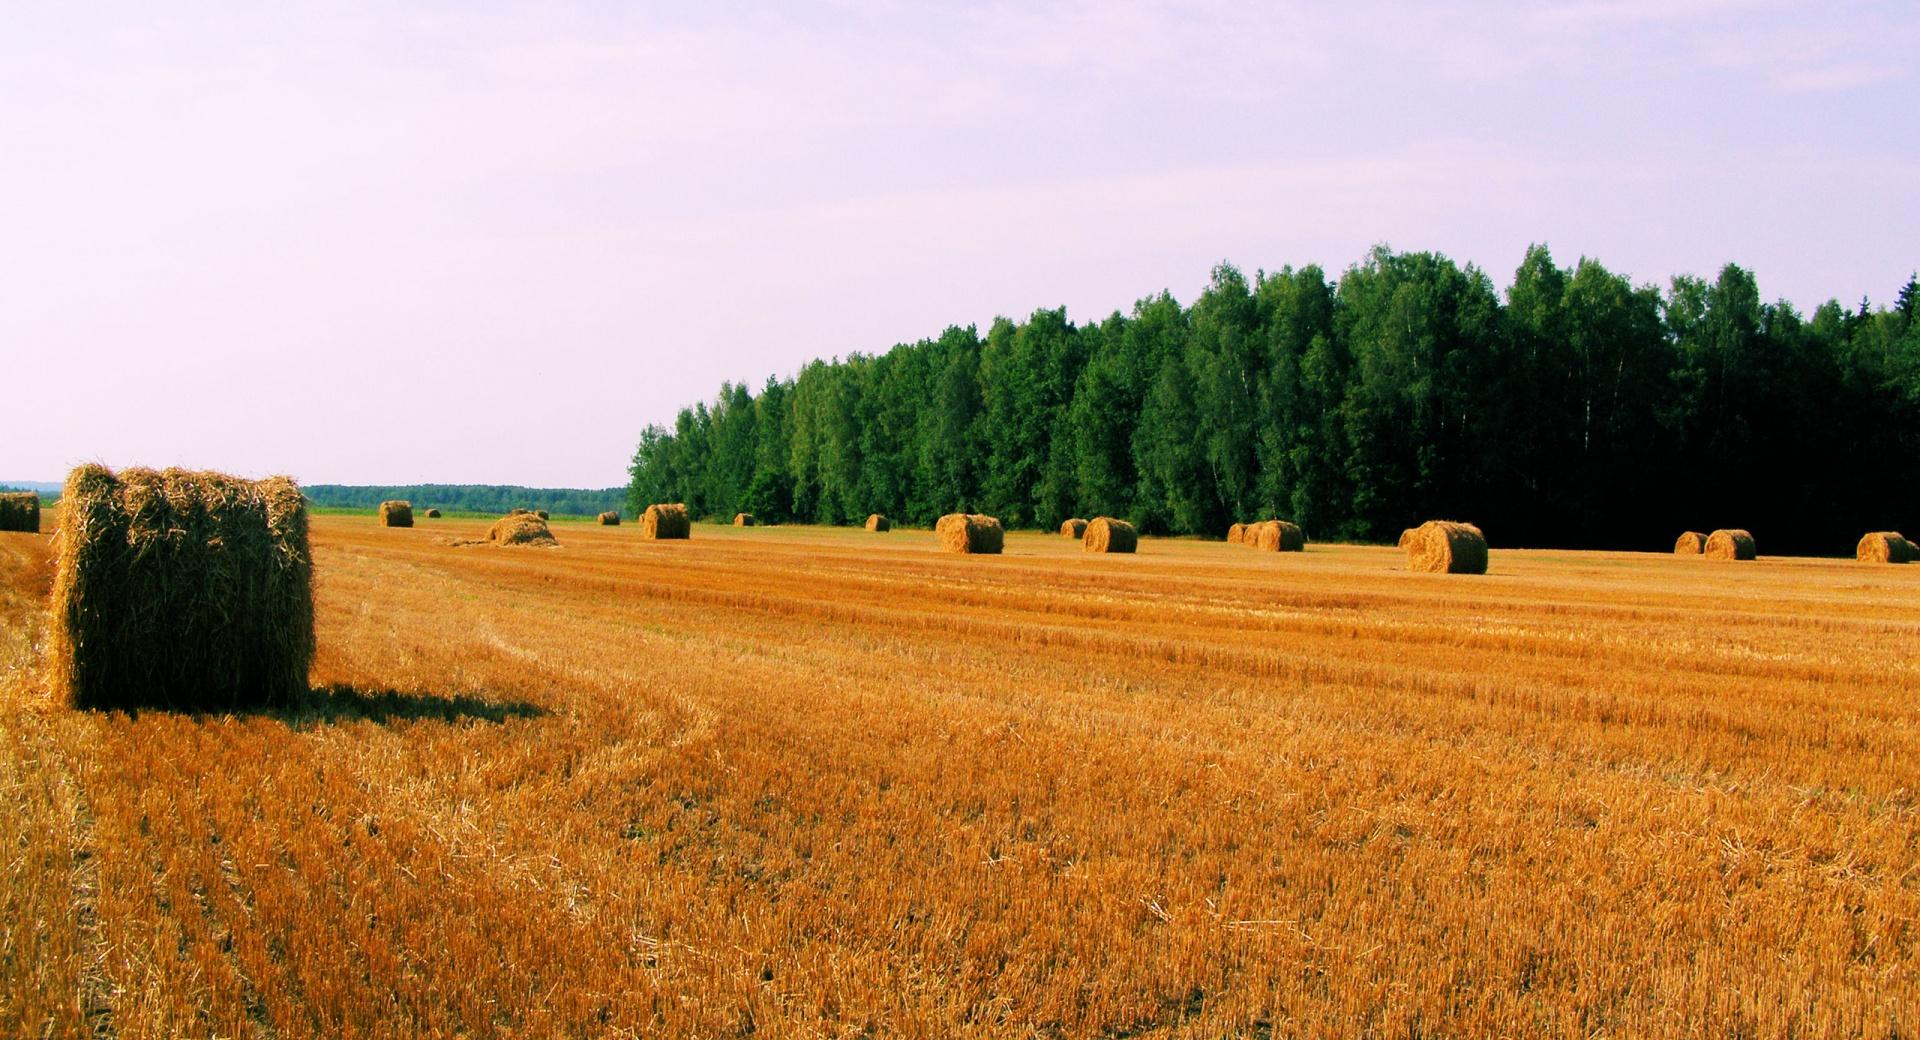 Haystack On Field wallpapers HD quality